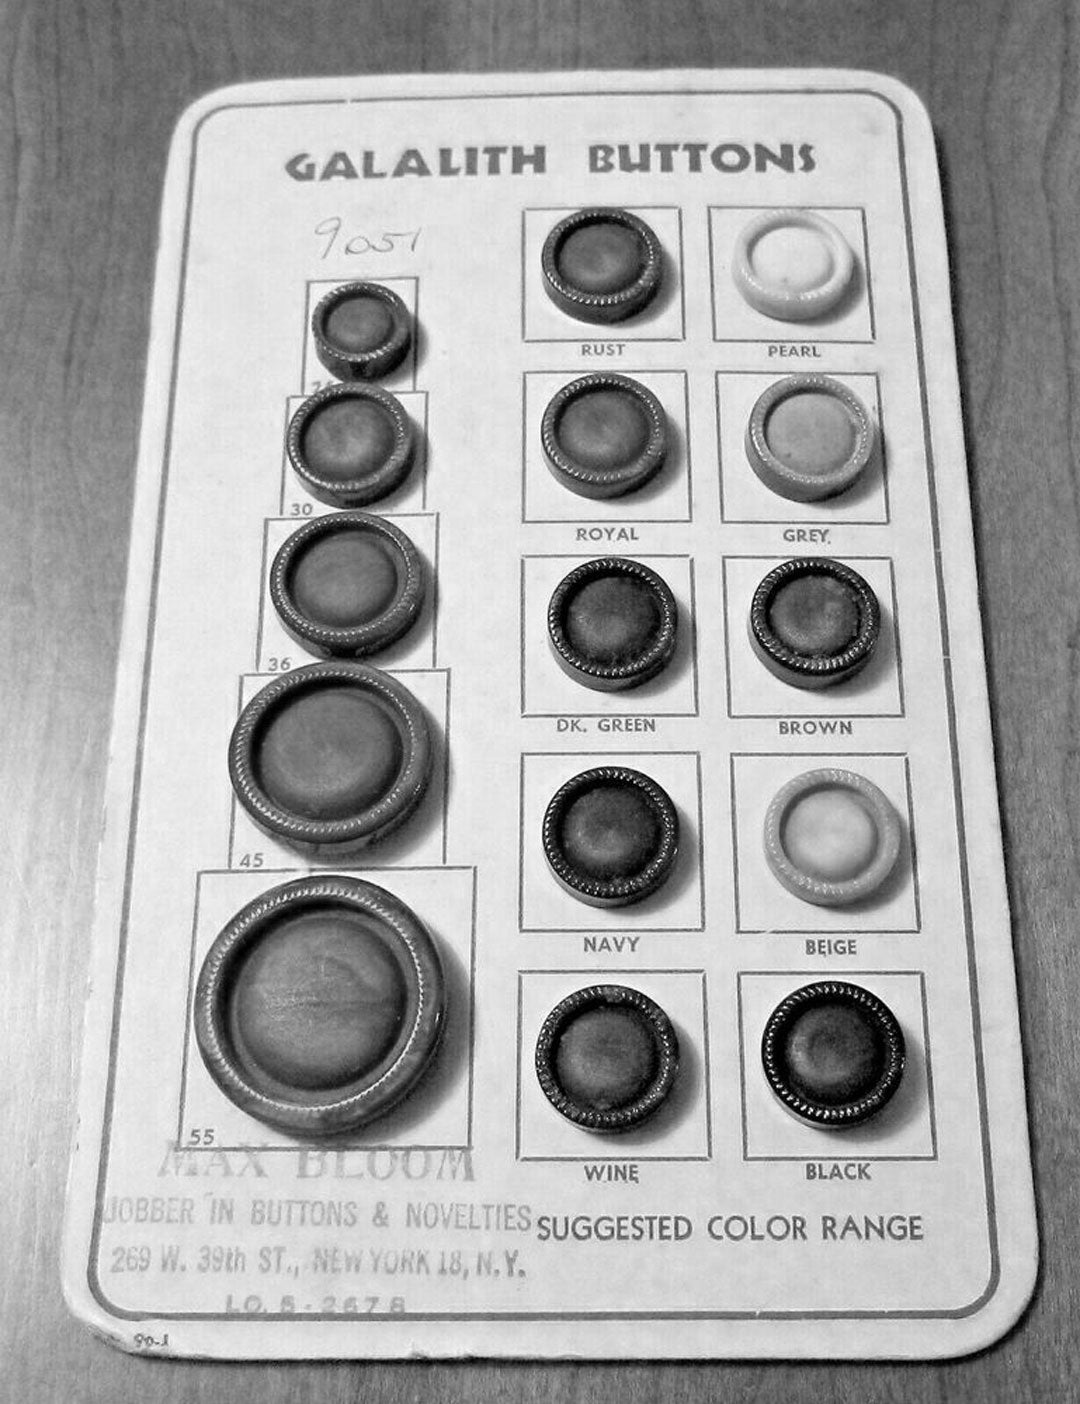 Samples of old Galalith buttons